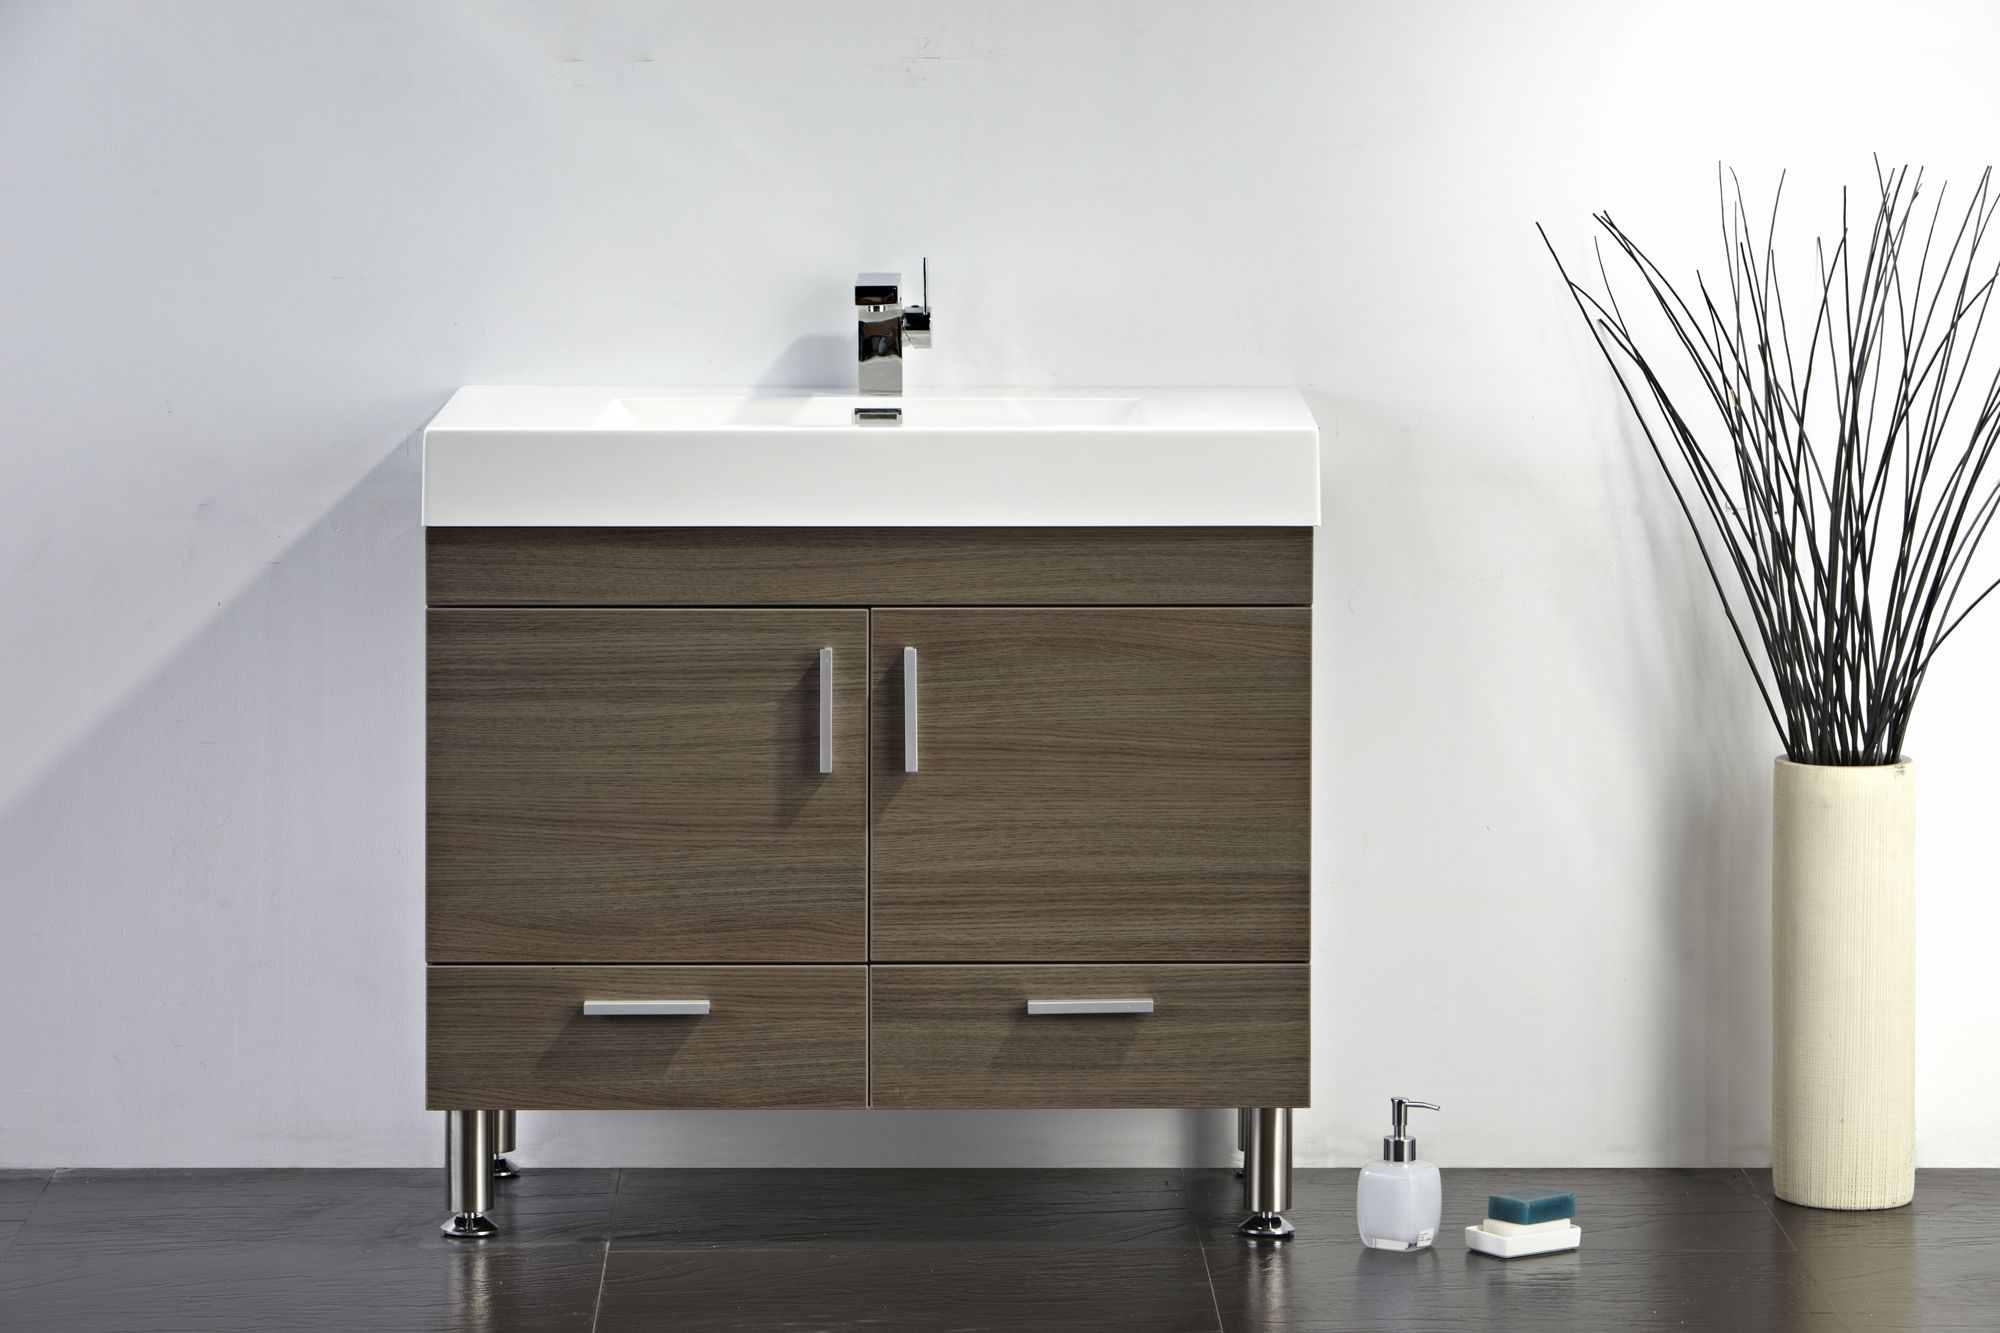 bathroom cabinets and sinks. Bathroom Decoration Sink Cabinets And Vanities Single Modern With Design Wood Cabinet Marble White Color Wonderful Vanity Bathroom, Sinks